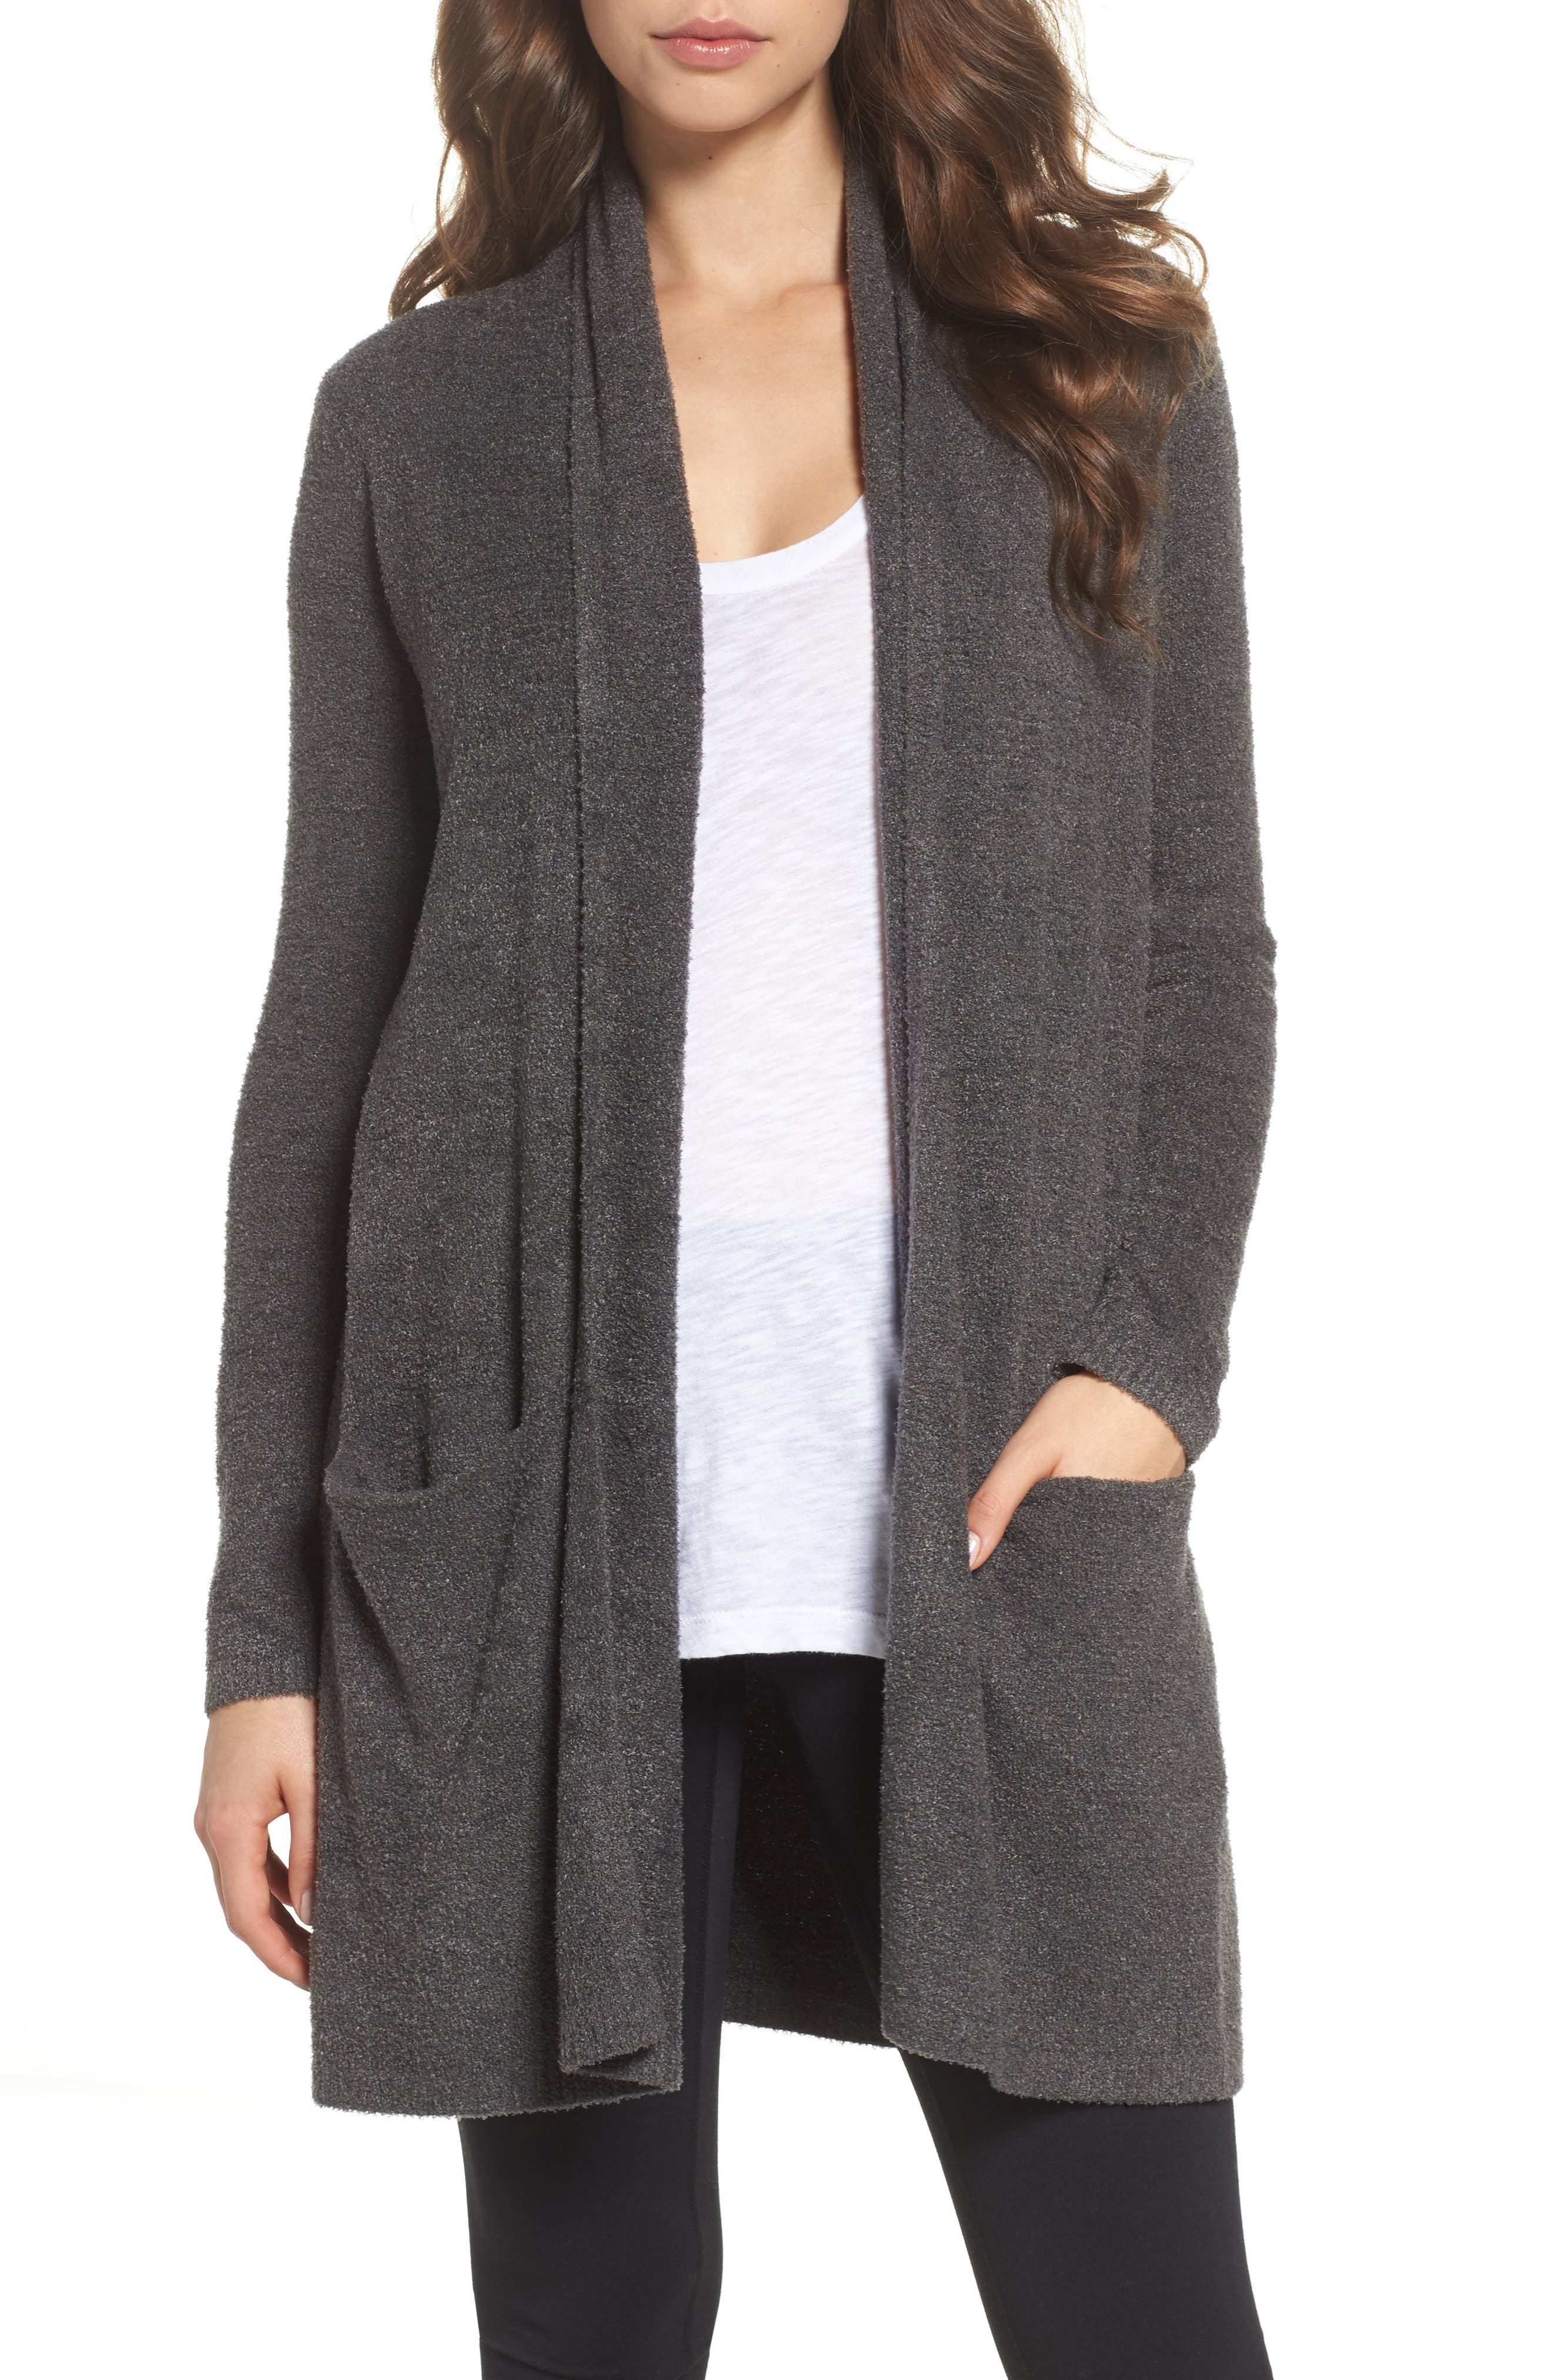 Barefoot Dreams Essential Cardigan,                         Main,                         color, Carbon